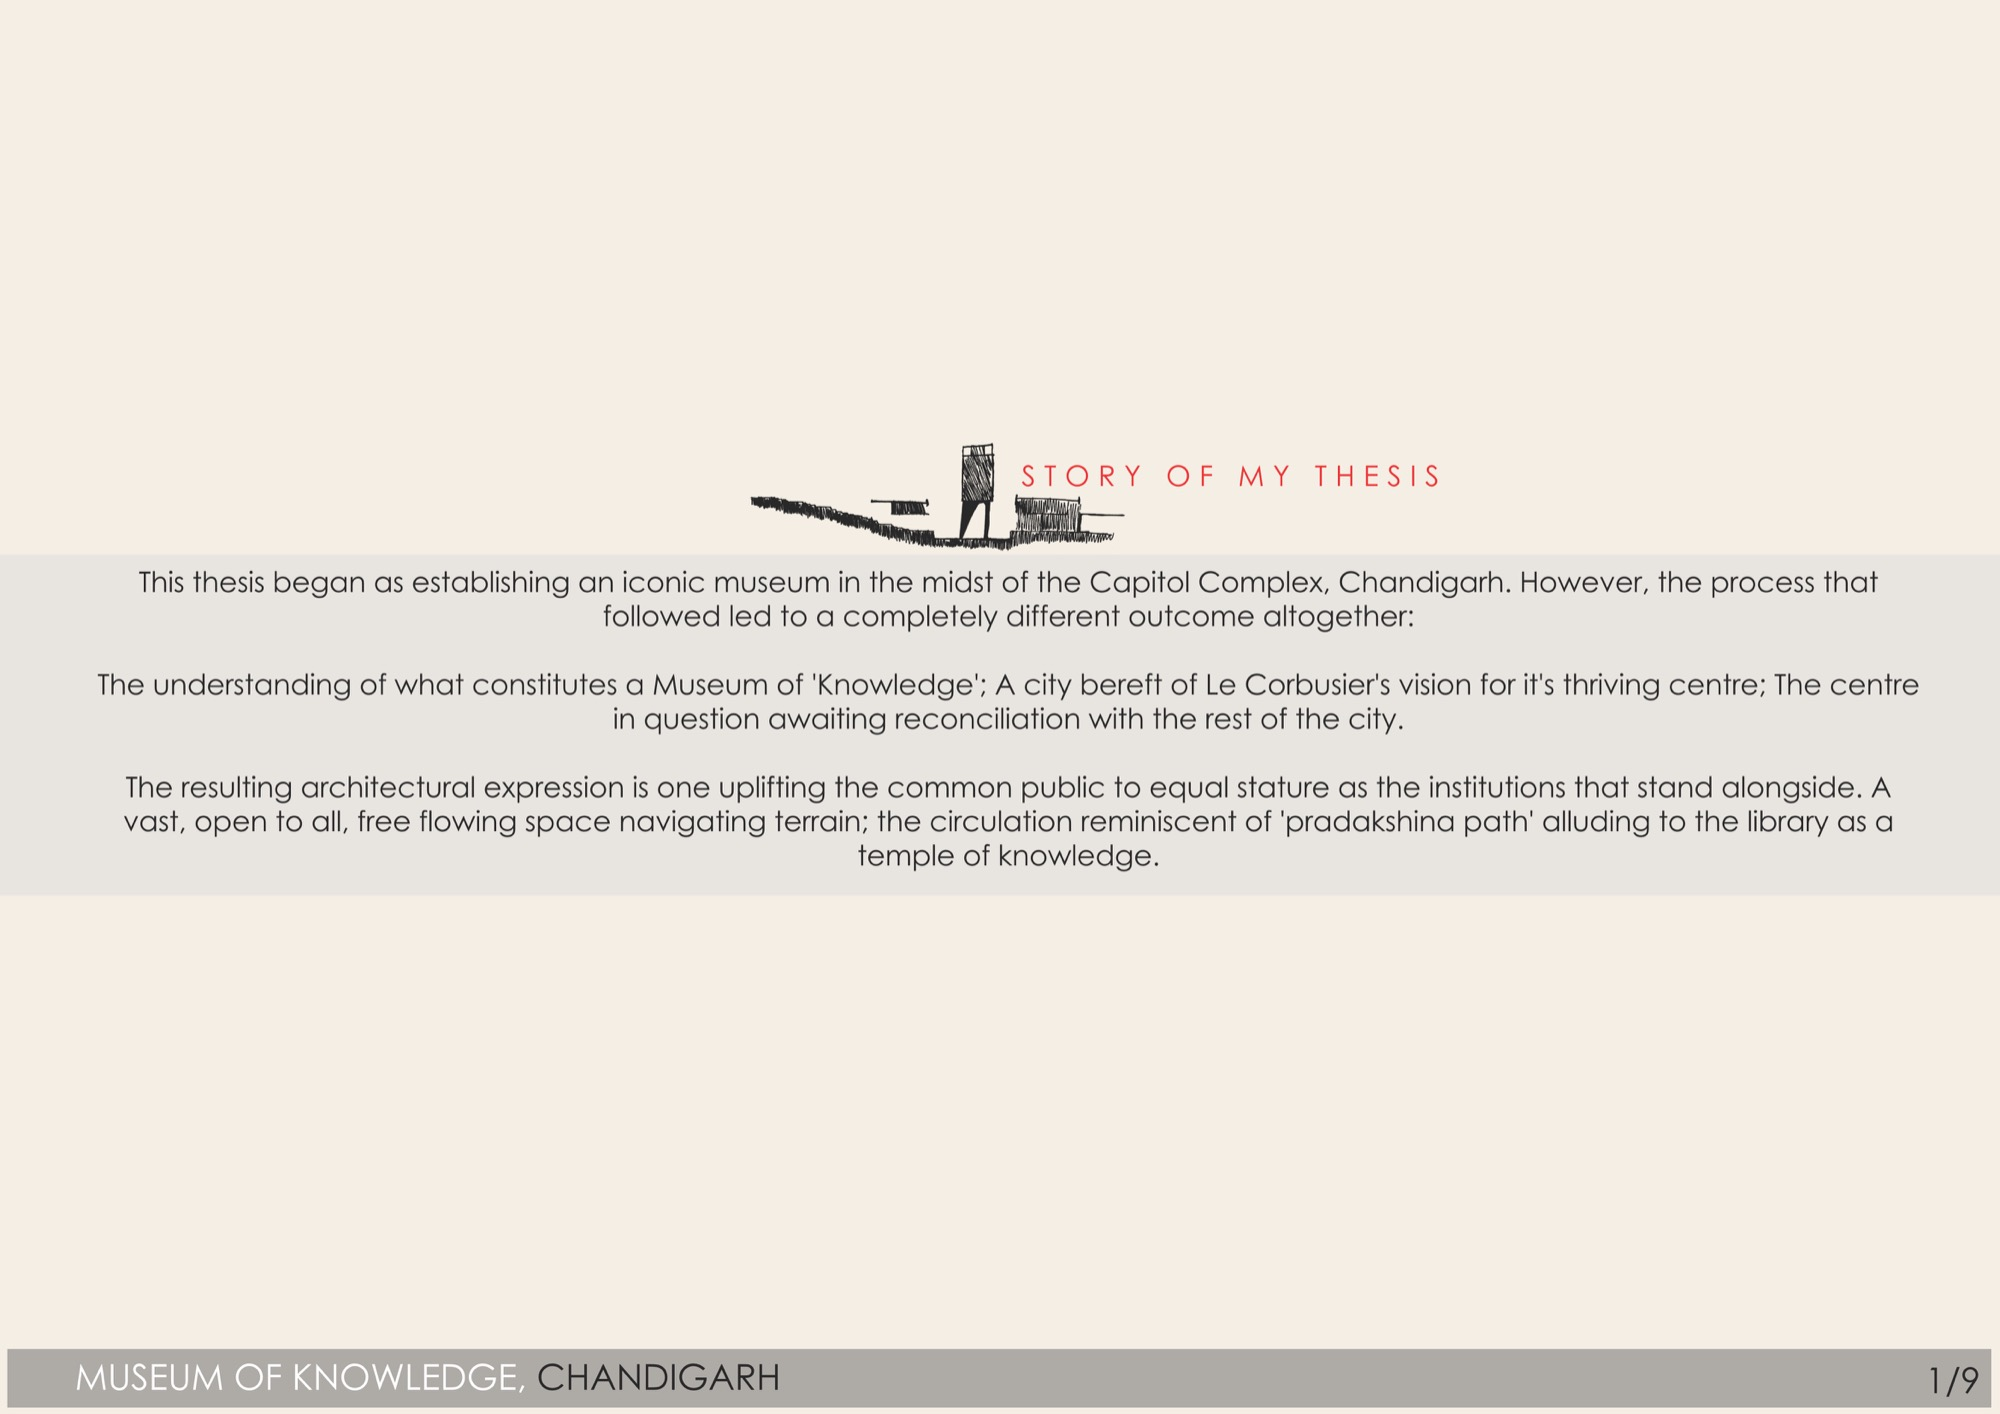 B.Arch Thesis: Museum of Knowledge, Chandigarh, by Nikhil Pawar 9